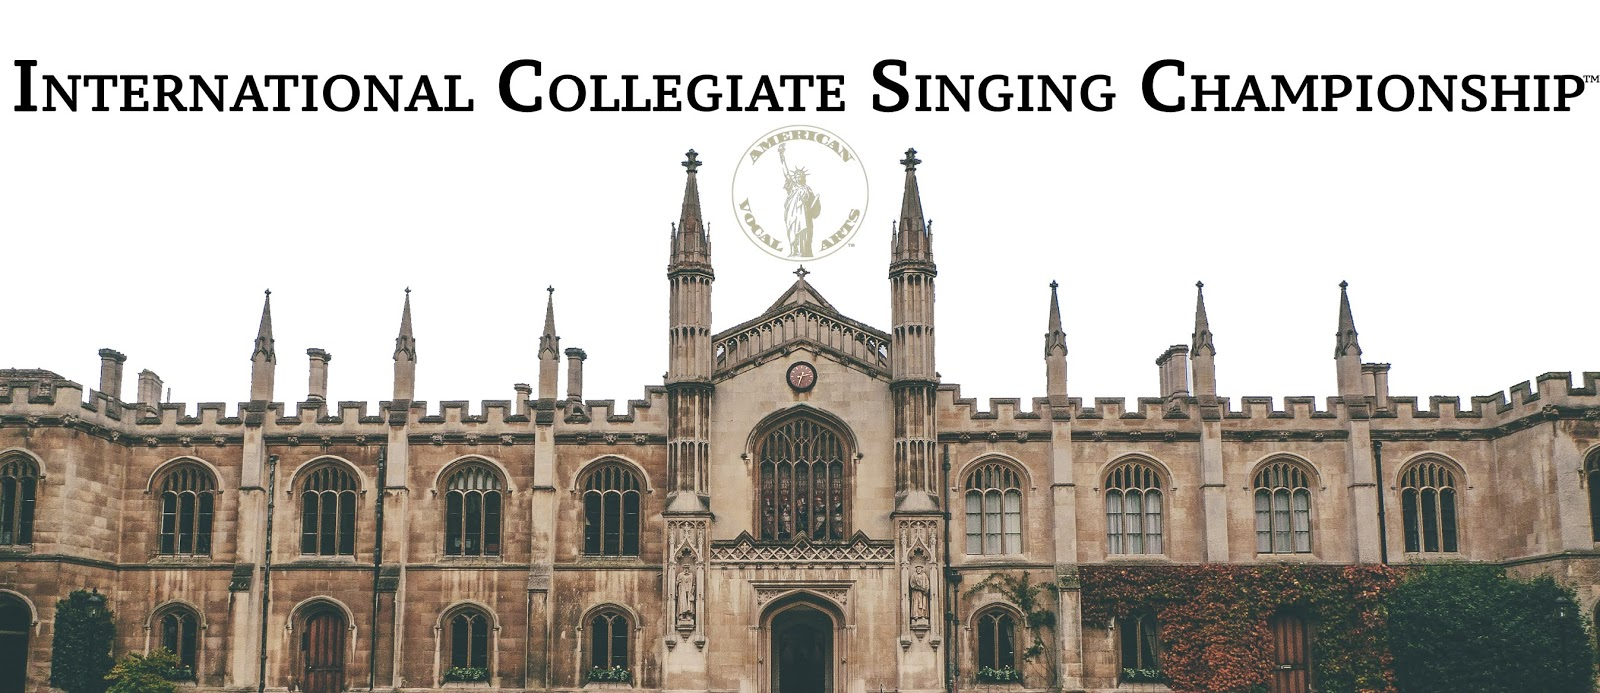 Finalists Announced For The International Collegiate Singing Championship